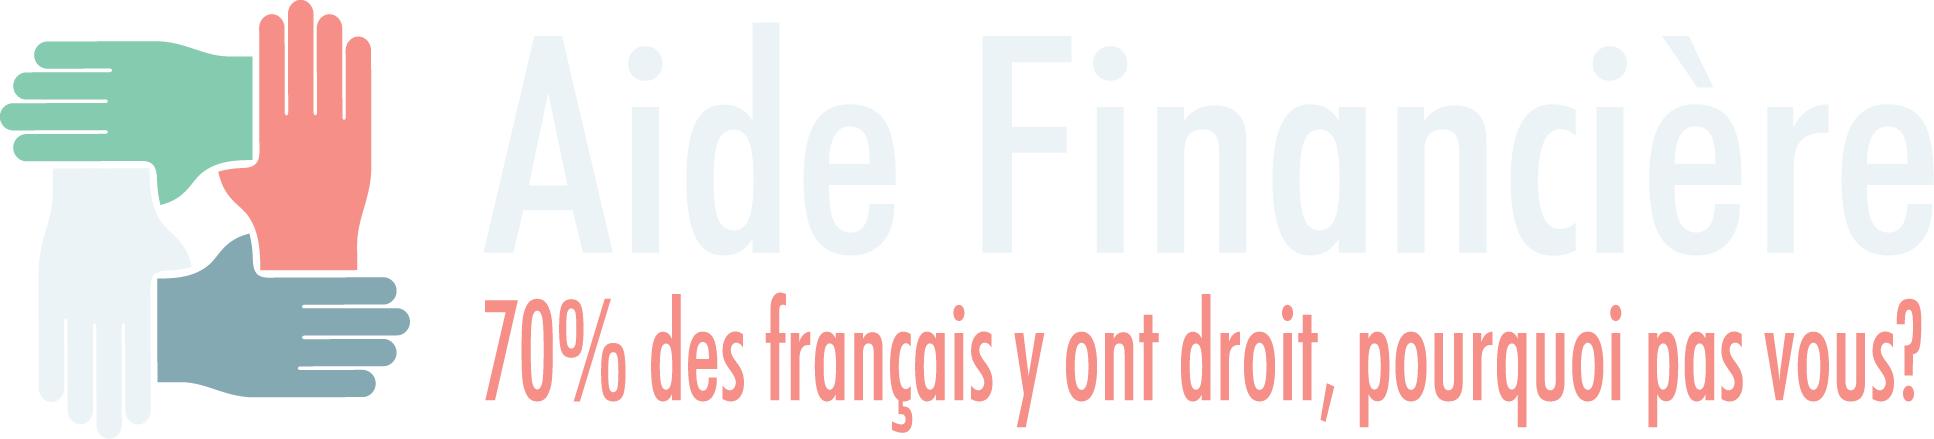 aide-financiere.net